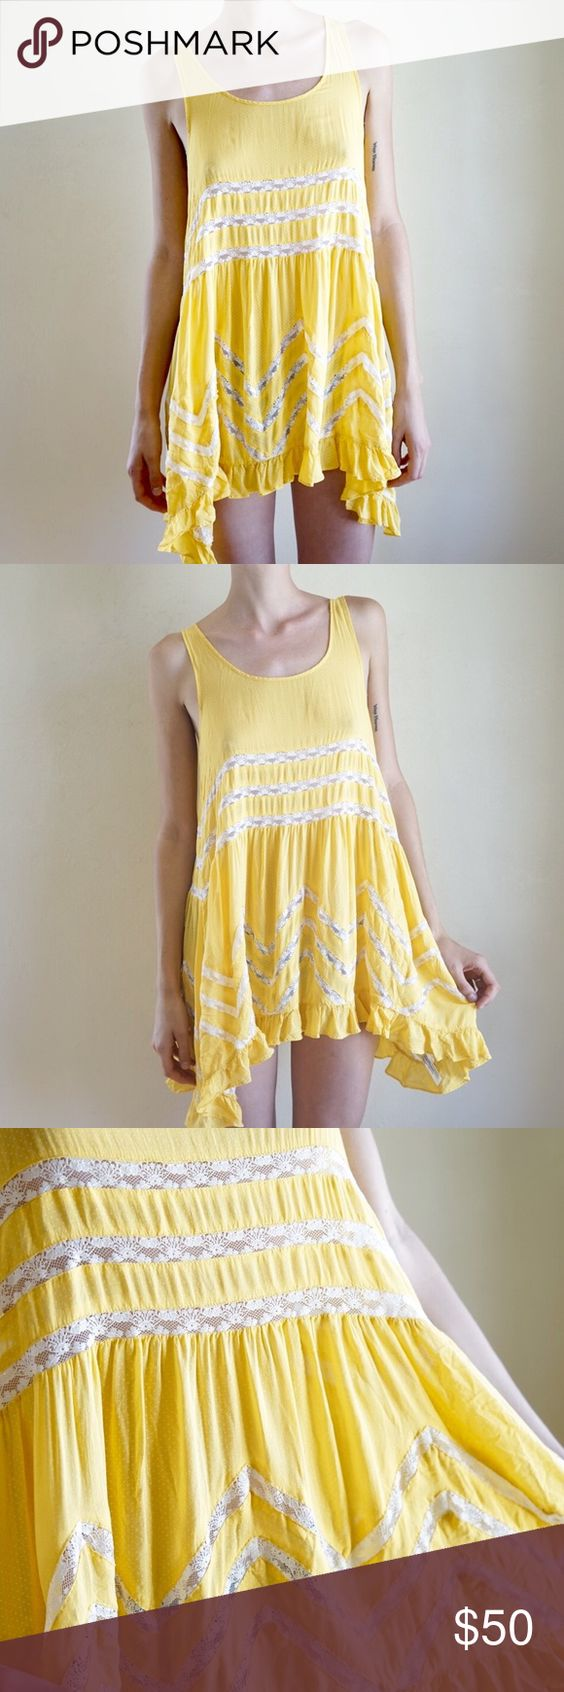 Free People trapeze slip dress Yellow trapeze slip dress in yellow. Polka dot material with lace inlays. The tag has been removed but this is definitely true Free People. Most likely a size S or XS. Great condition. Free People Dresses Asymmetrical